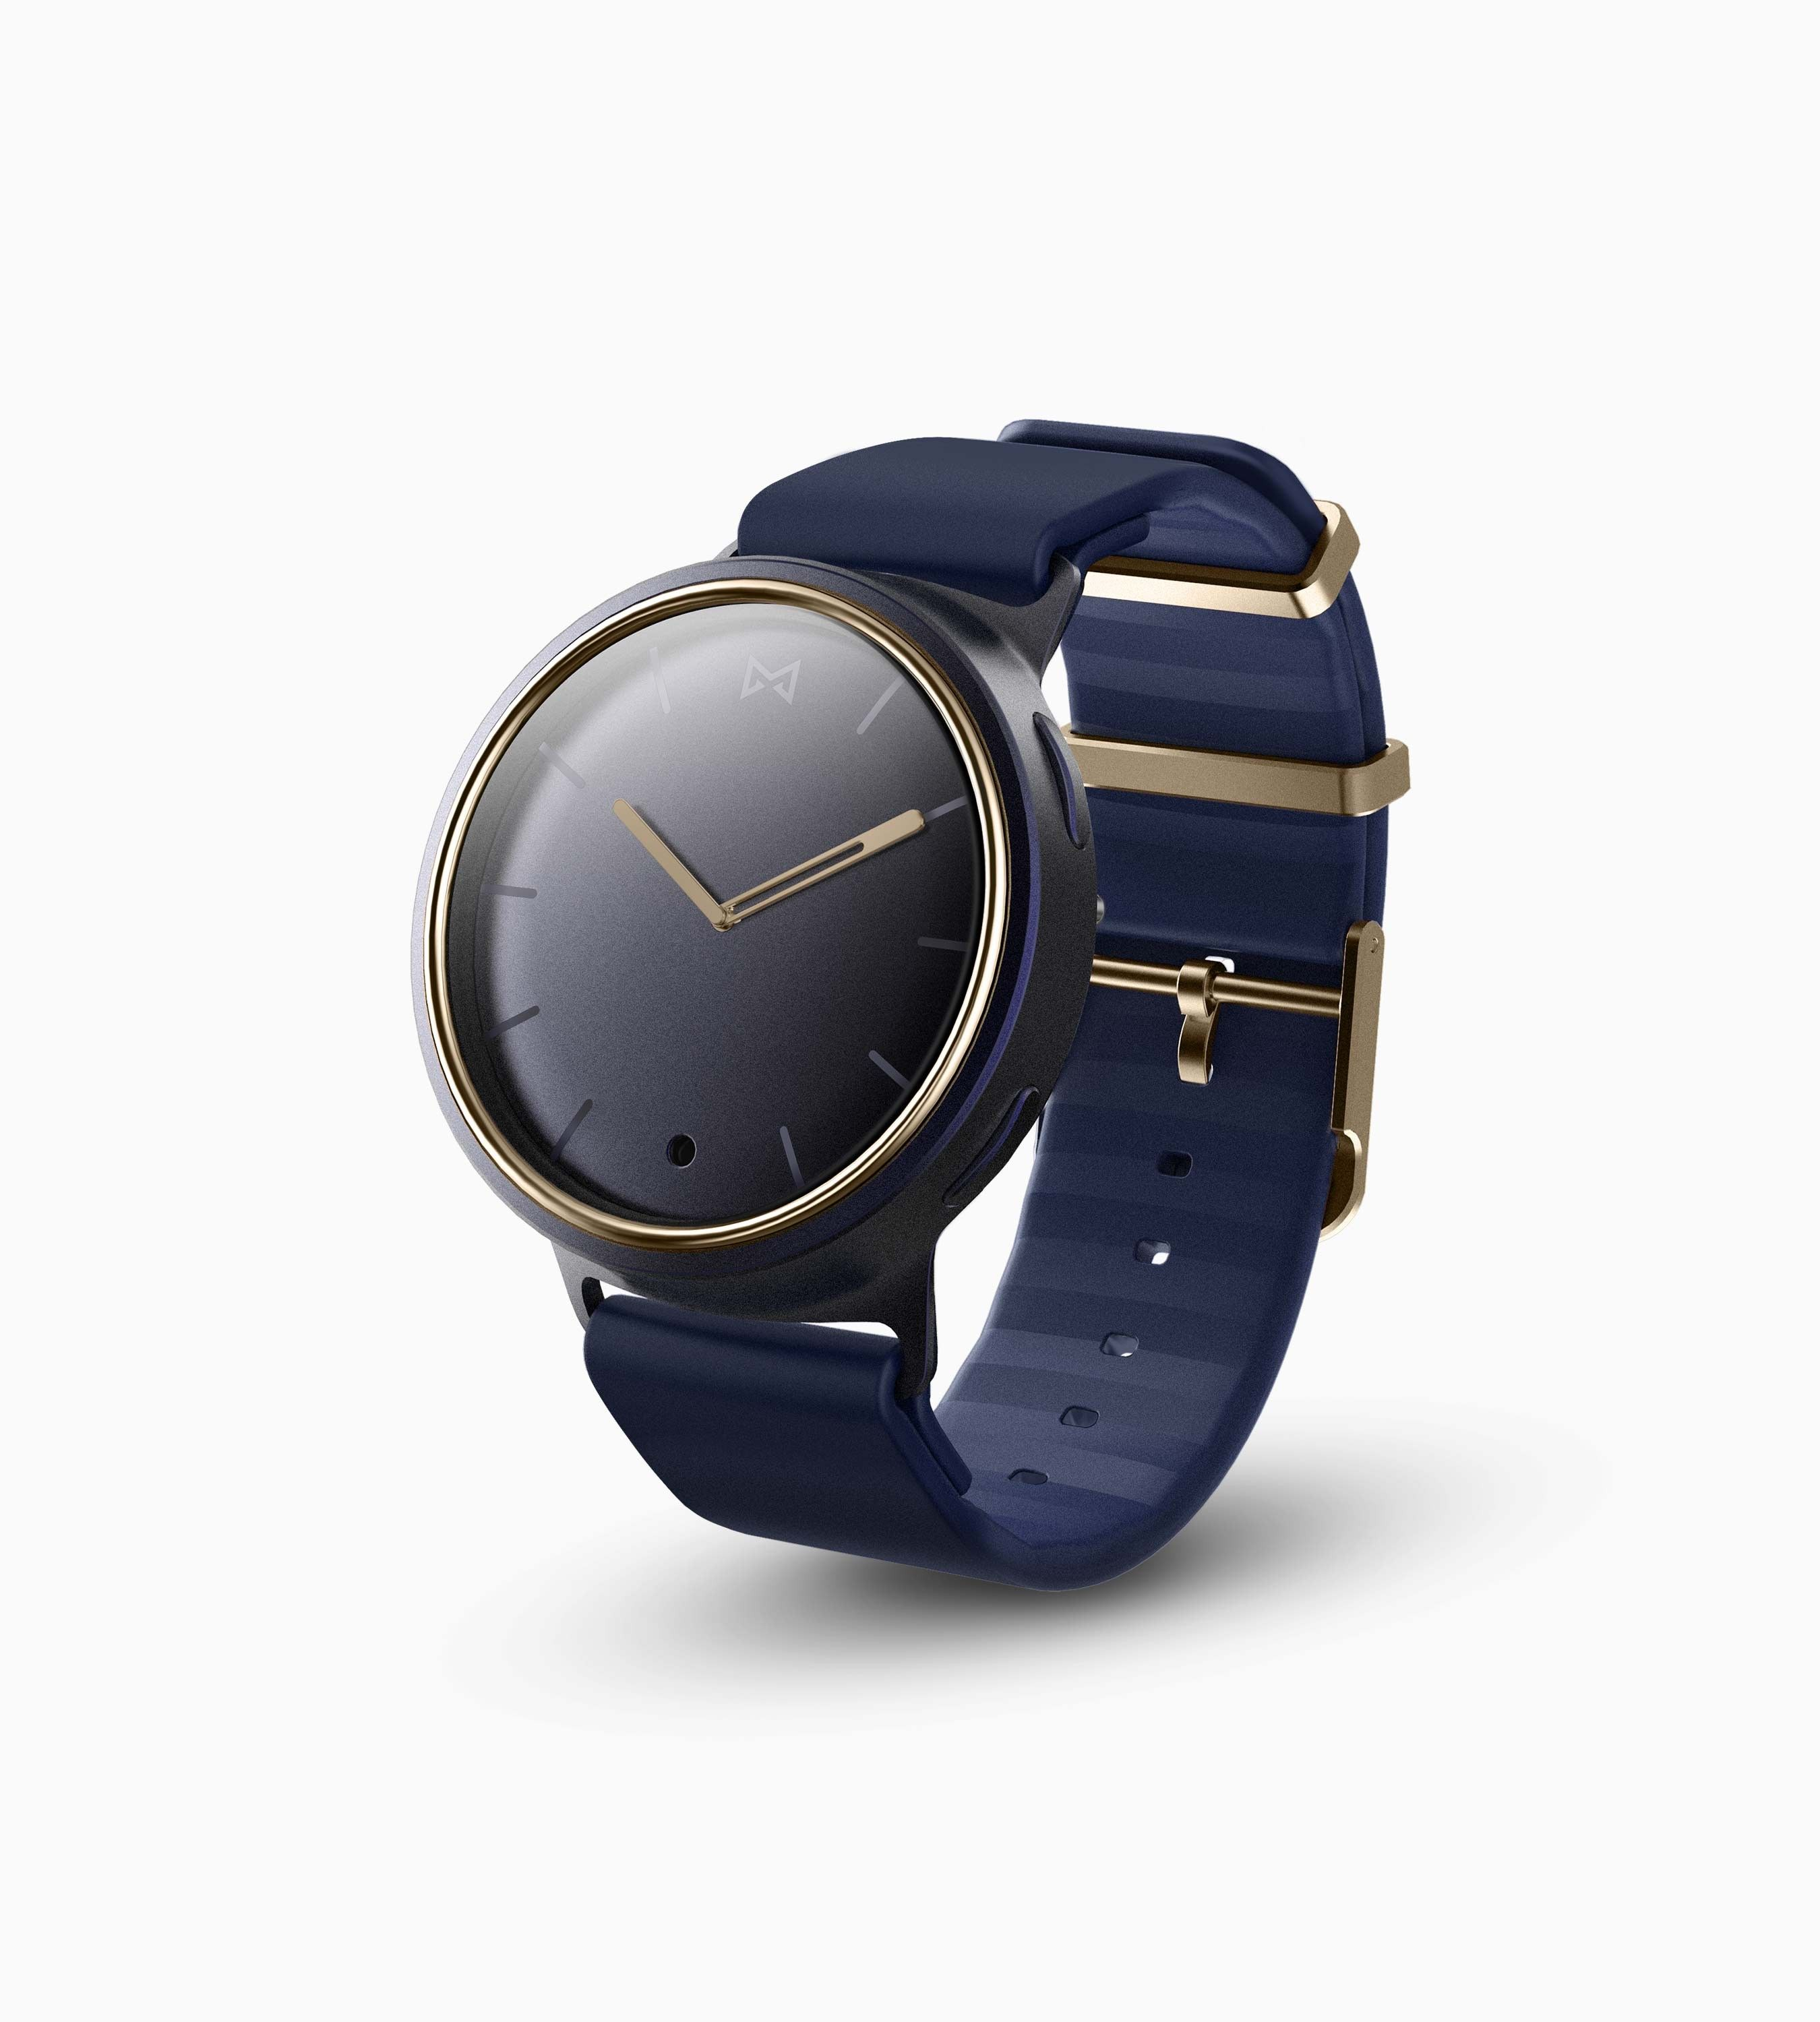 Shop Misfit Phase Hybrid Smartwatch today at Misfit Minimalist Style Maximalist Options